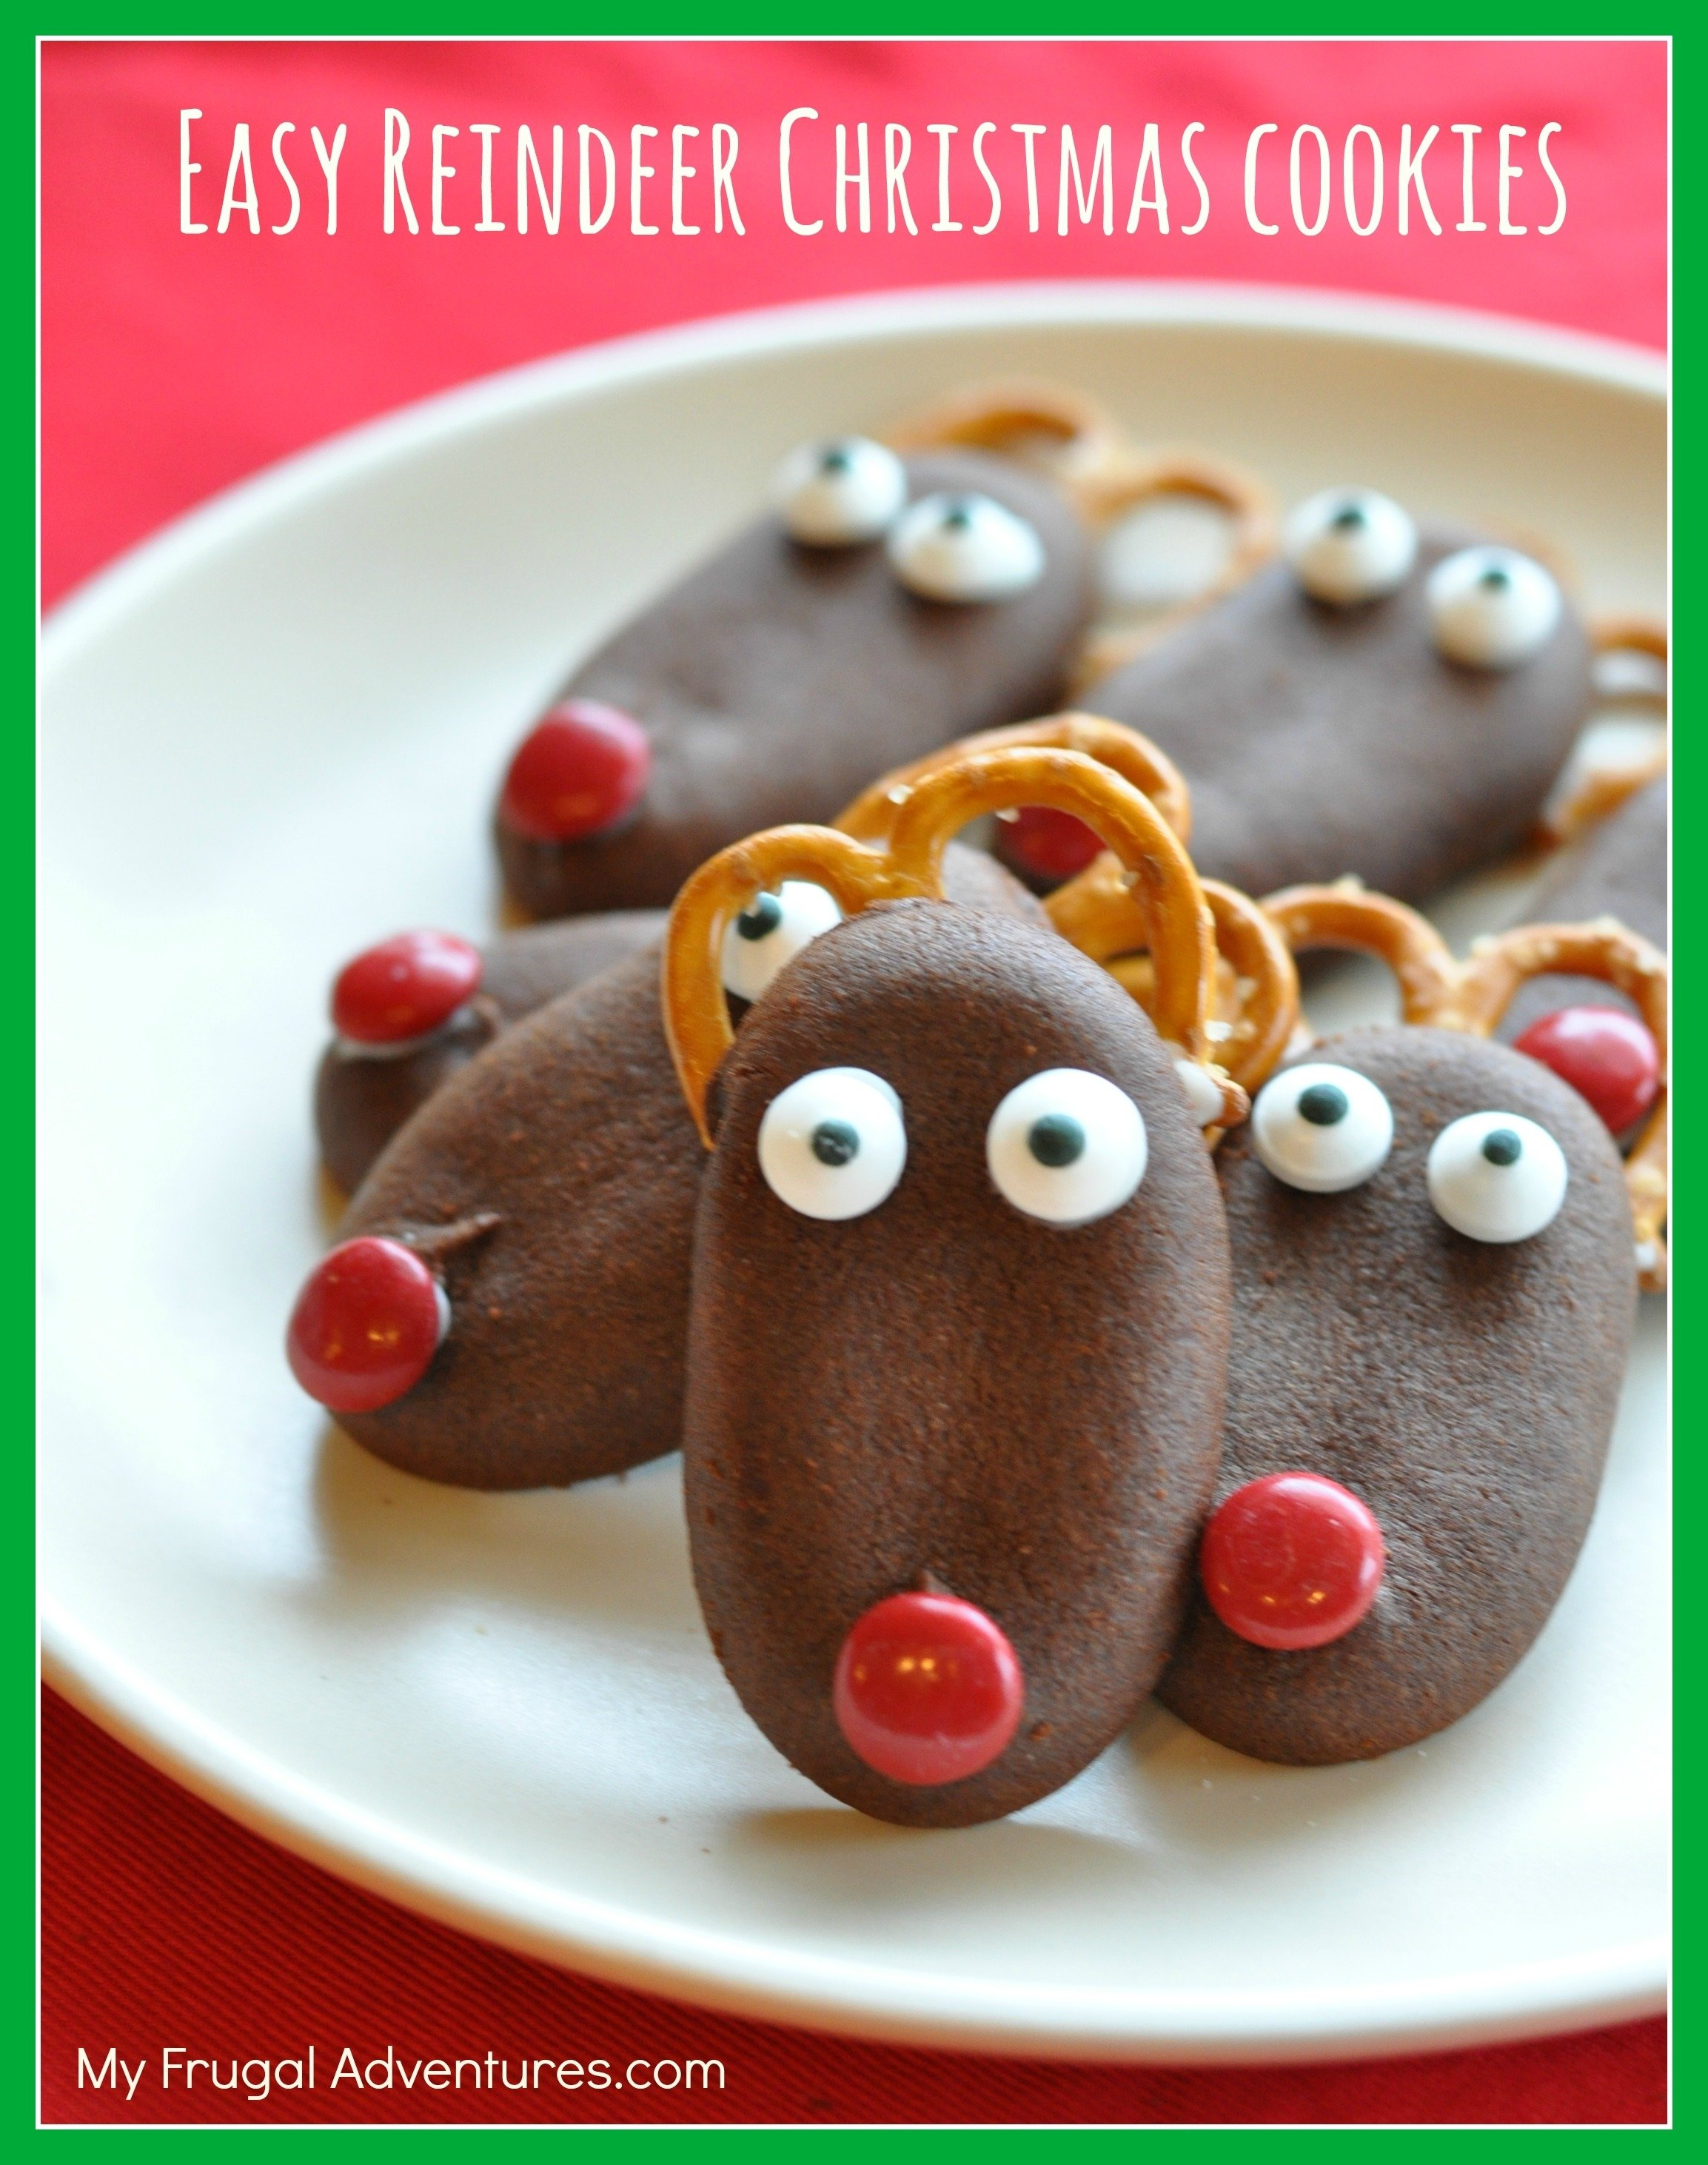 10 Perfect Christmas Cookie Ideas For Kids quick easy reindeer christmas cookies my frugal adventures 2021